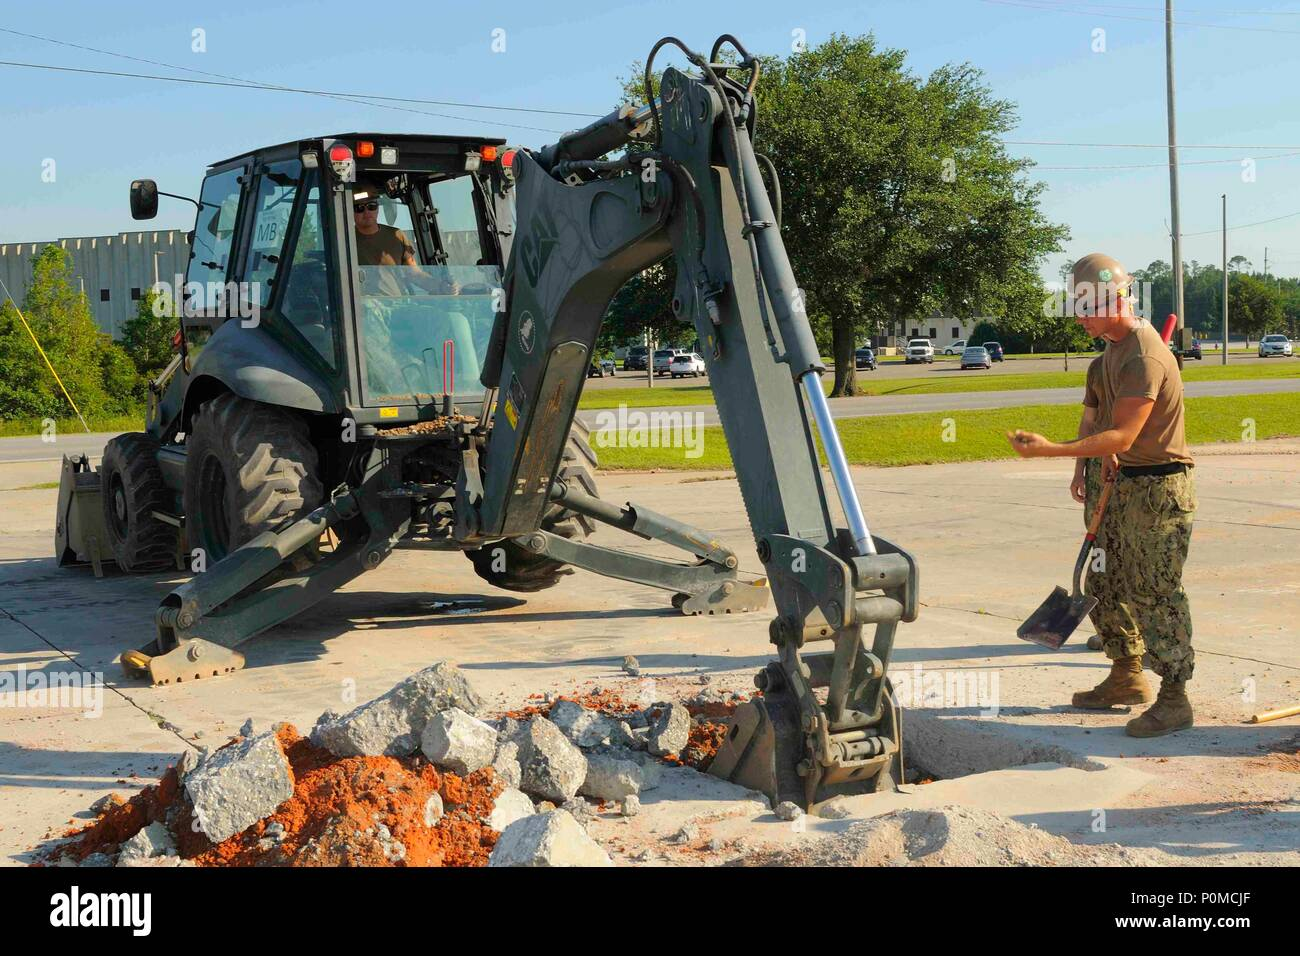 Ncf Stock Photos Images Alamy 1009 Military Wiring Harness Diagram 180607 N Ga223 Gulfport Miss June 7